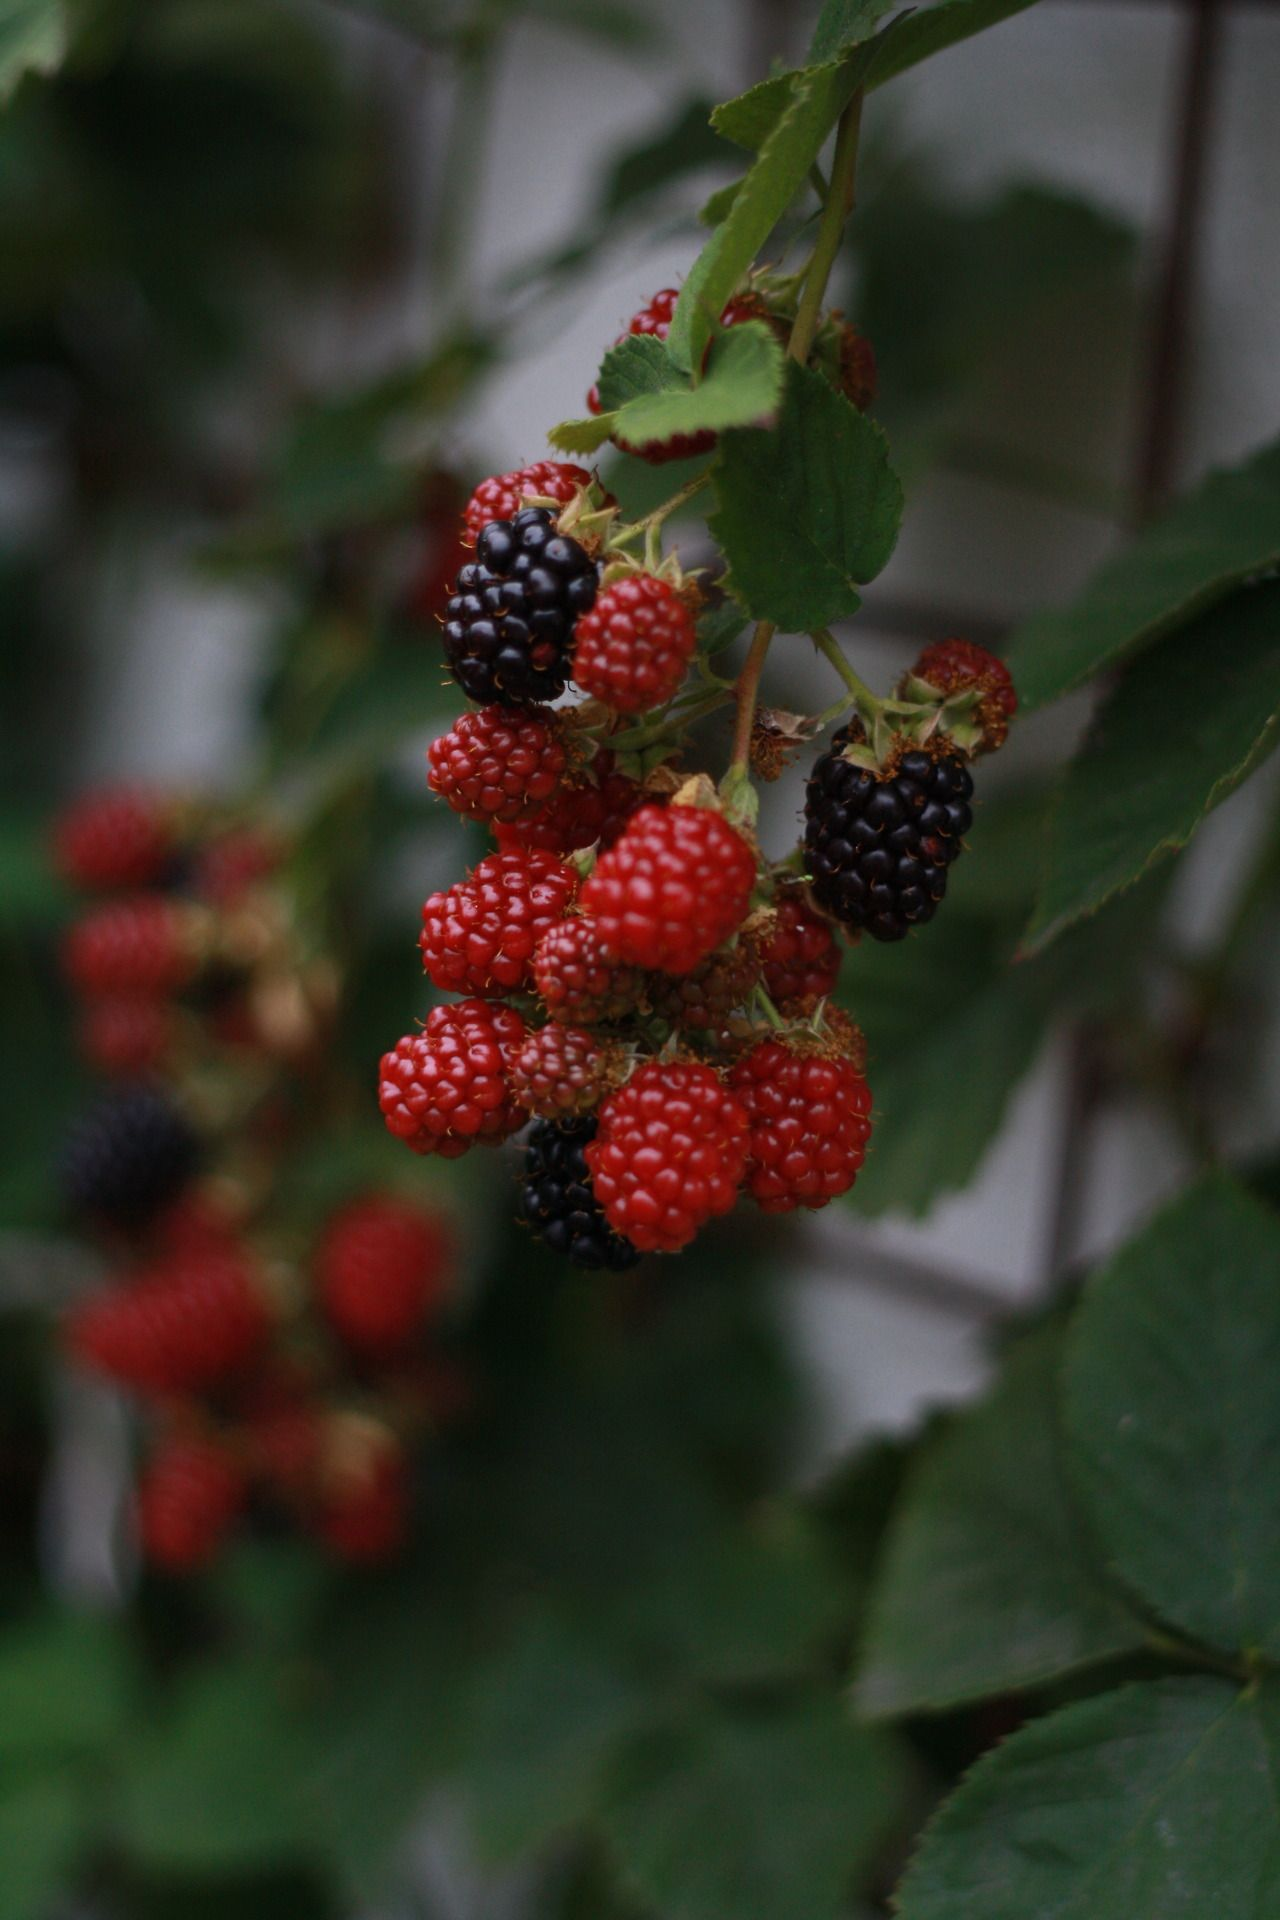 Blackberries - they are almost ready for pies and puddings, jellies and jams